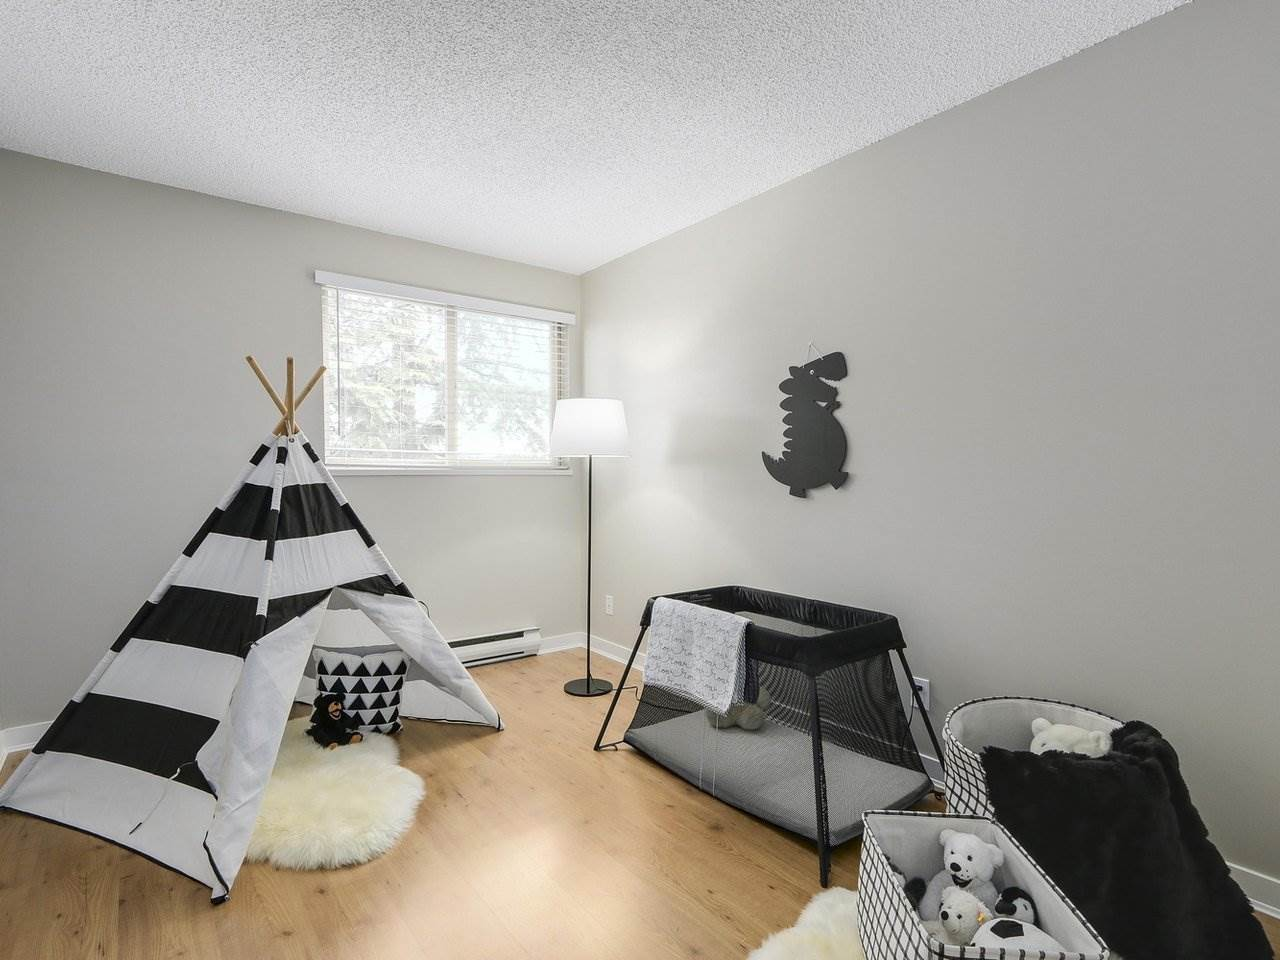 "Photo 13: 309 1121 HOWIE Avenue in Coquitlam: Central Coquitlam Condo for sale in ""THE WILLOWS"" : MLS(r) # R2179241"